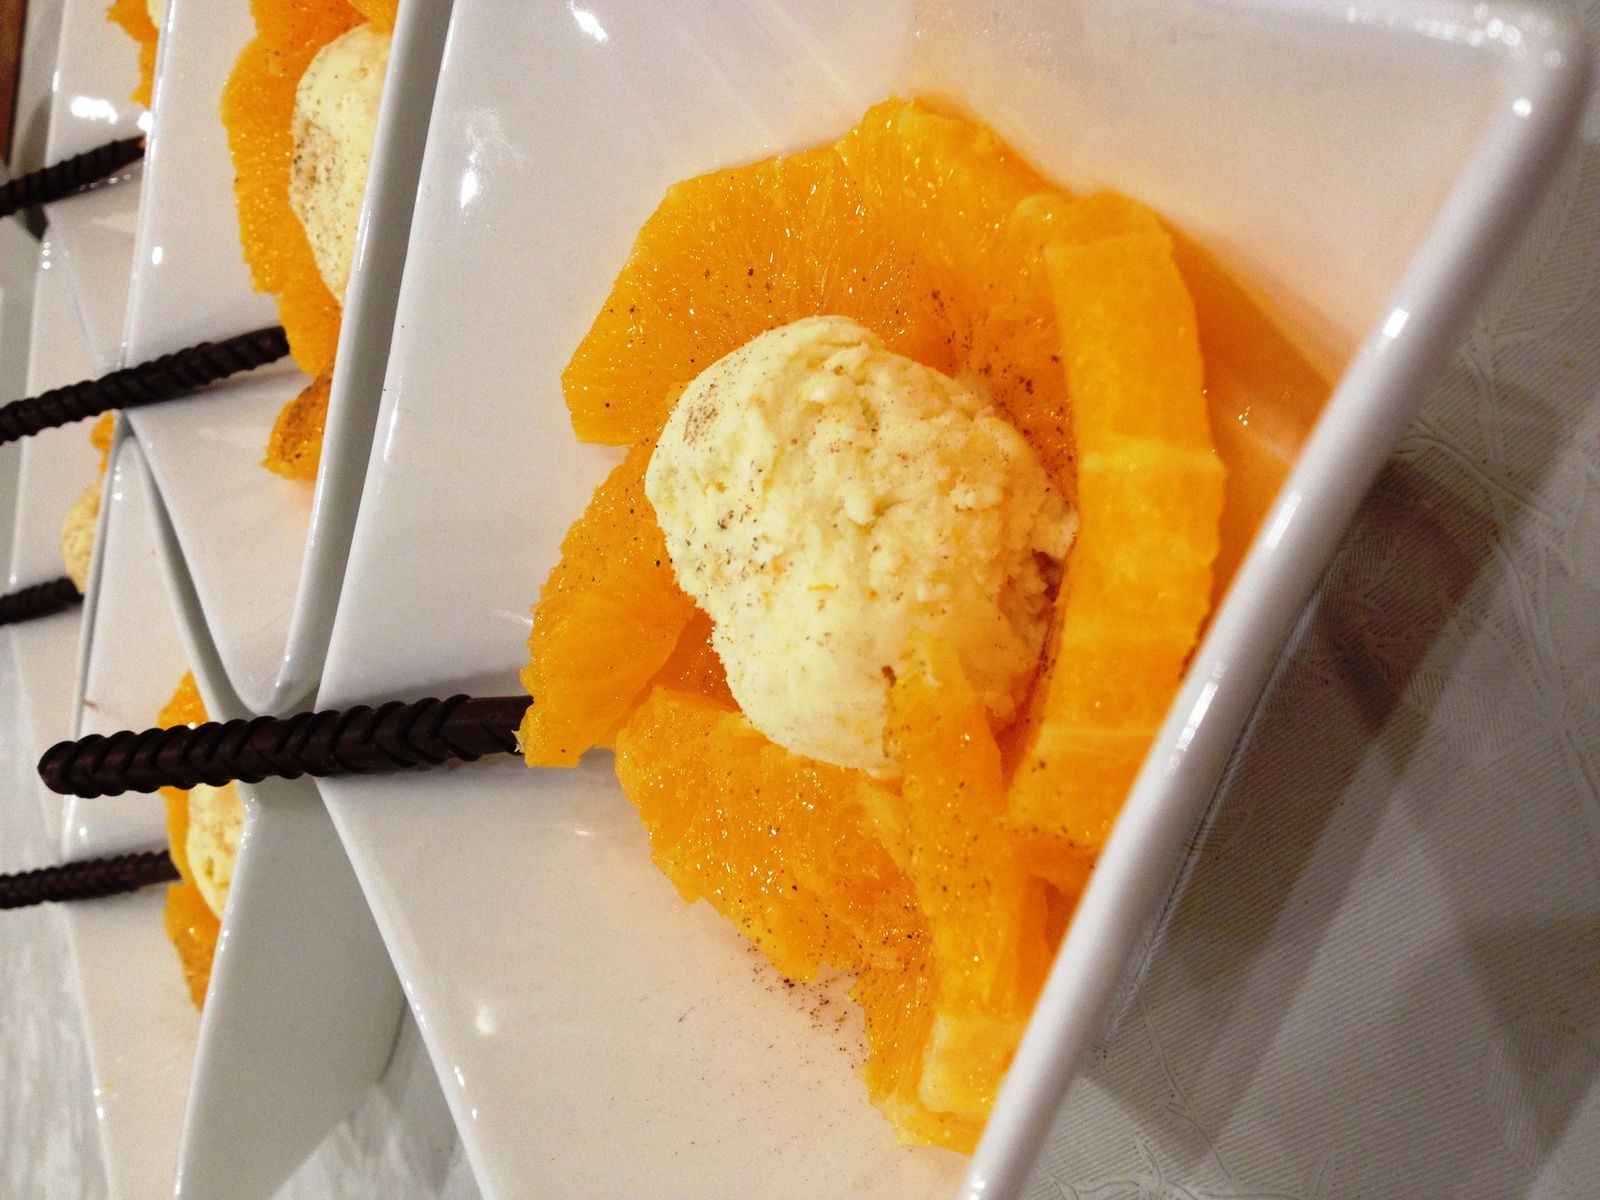 salade d orange et glace au grand marnier ma cagouille